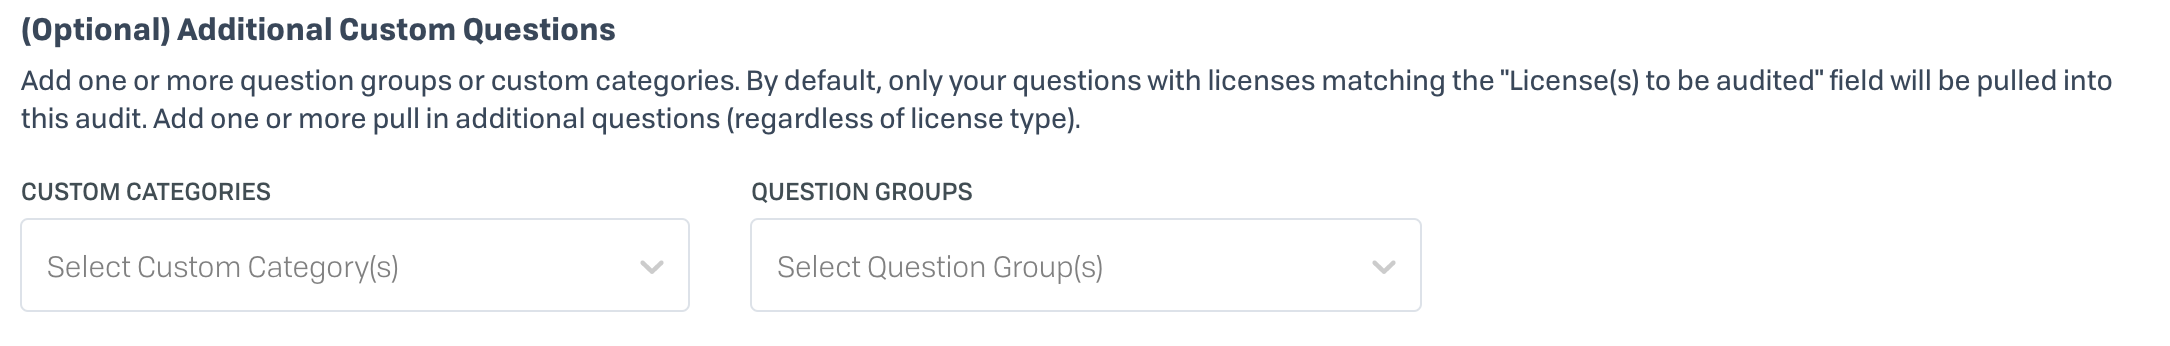 Zendesk_create_audit_additional_custom_questions.png